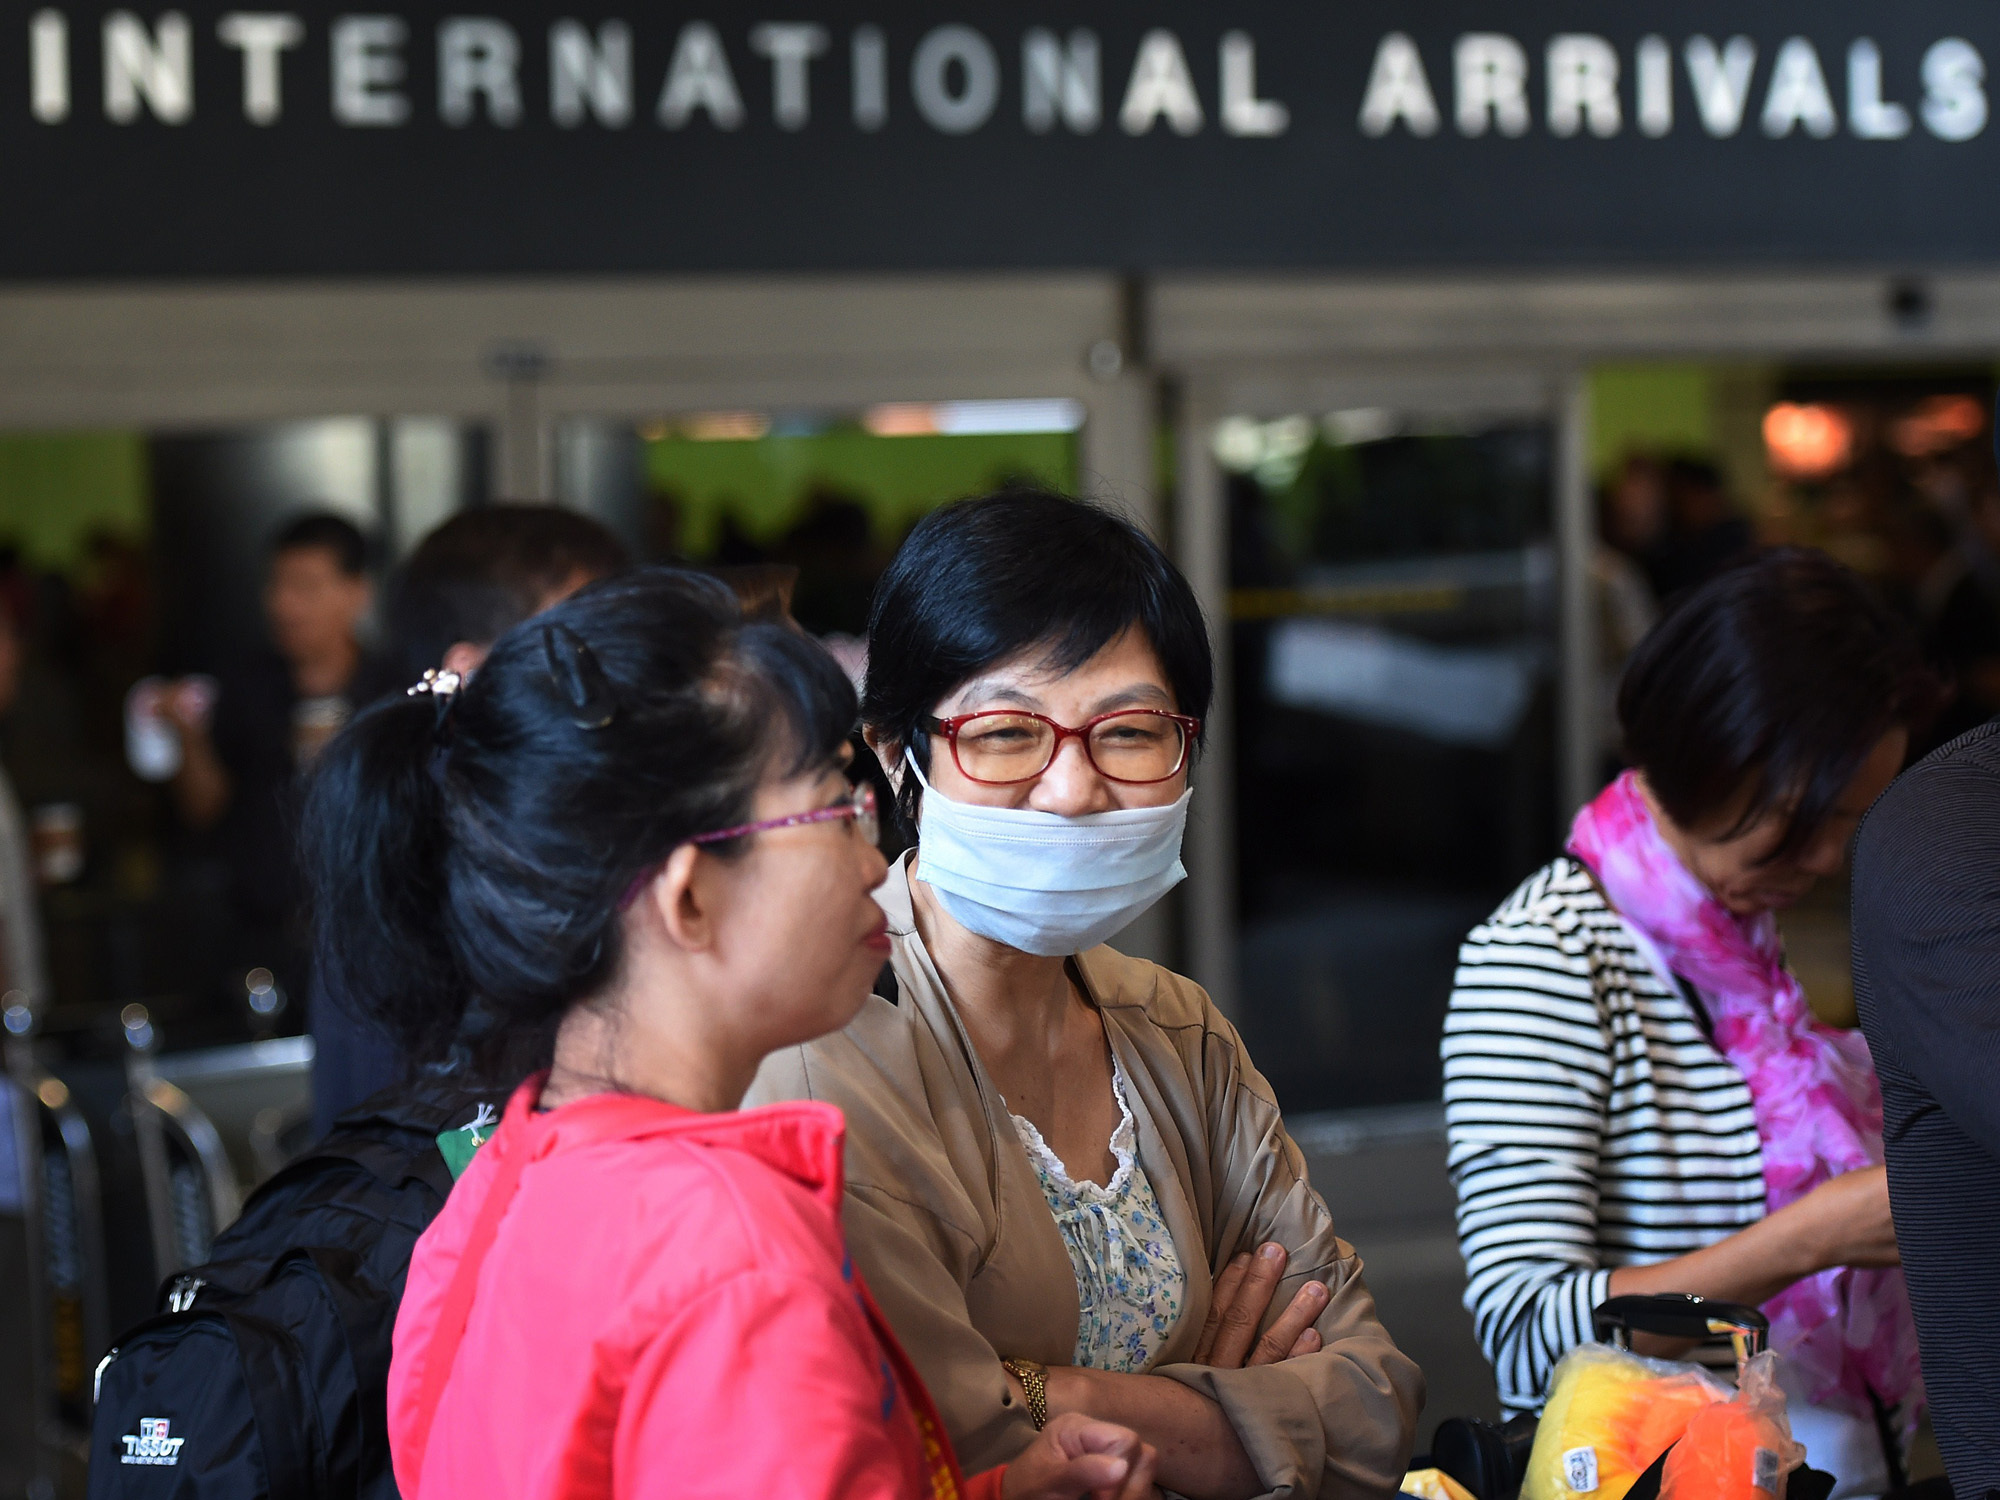 A passenger wearing a face mask arrives at Los Angeles International Airport Friday. Federal officials now require people traveling from West Africa to enter the U.S. at one of five airports equipped to screen them for signs of Ebola.A poll of Americans found almost all are aware of Ebola and that a majority are concerned about its spread to the U.S.A passenger wearing a face mask arrives at Los Angeles International Airport Friday. Federal officials now require people traveling from West Africa to enter the U.S. at one of five airports equipped to screen them for signs of Ebola.A poll of Americans found almost all are aware of Ebola and that a majority are concerned about its spread to the U.S.